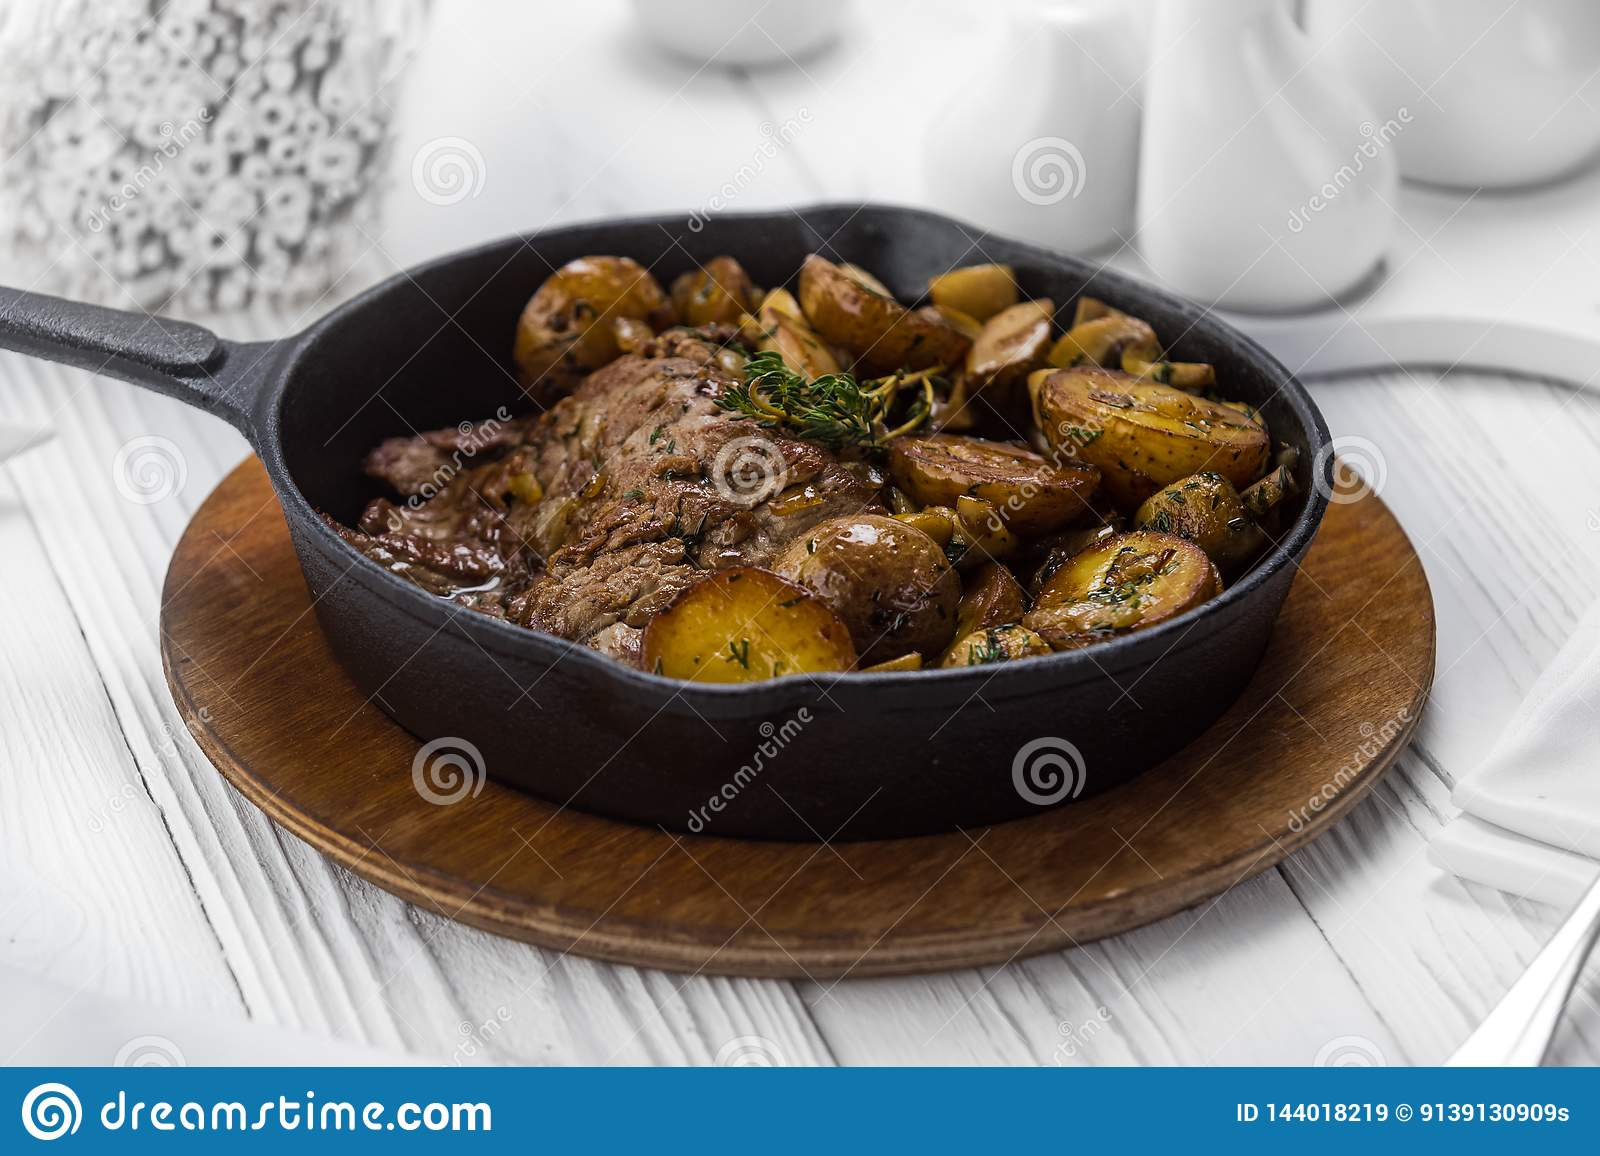 Grilled beef meat steak with fried potatoes